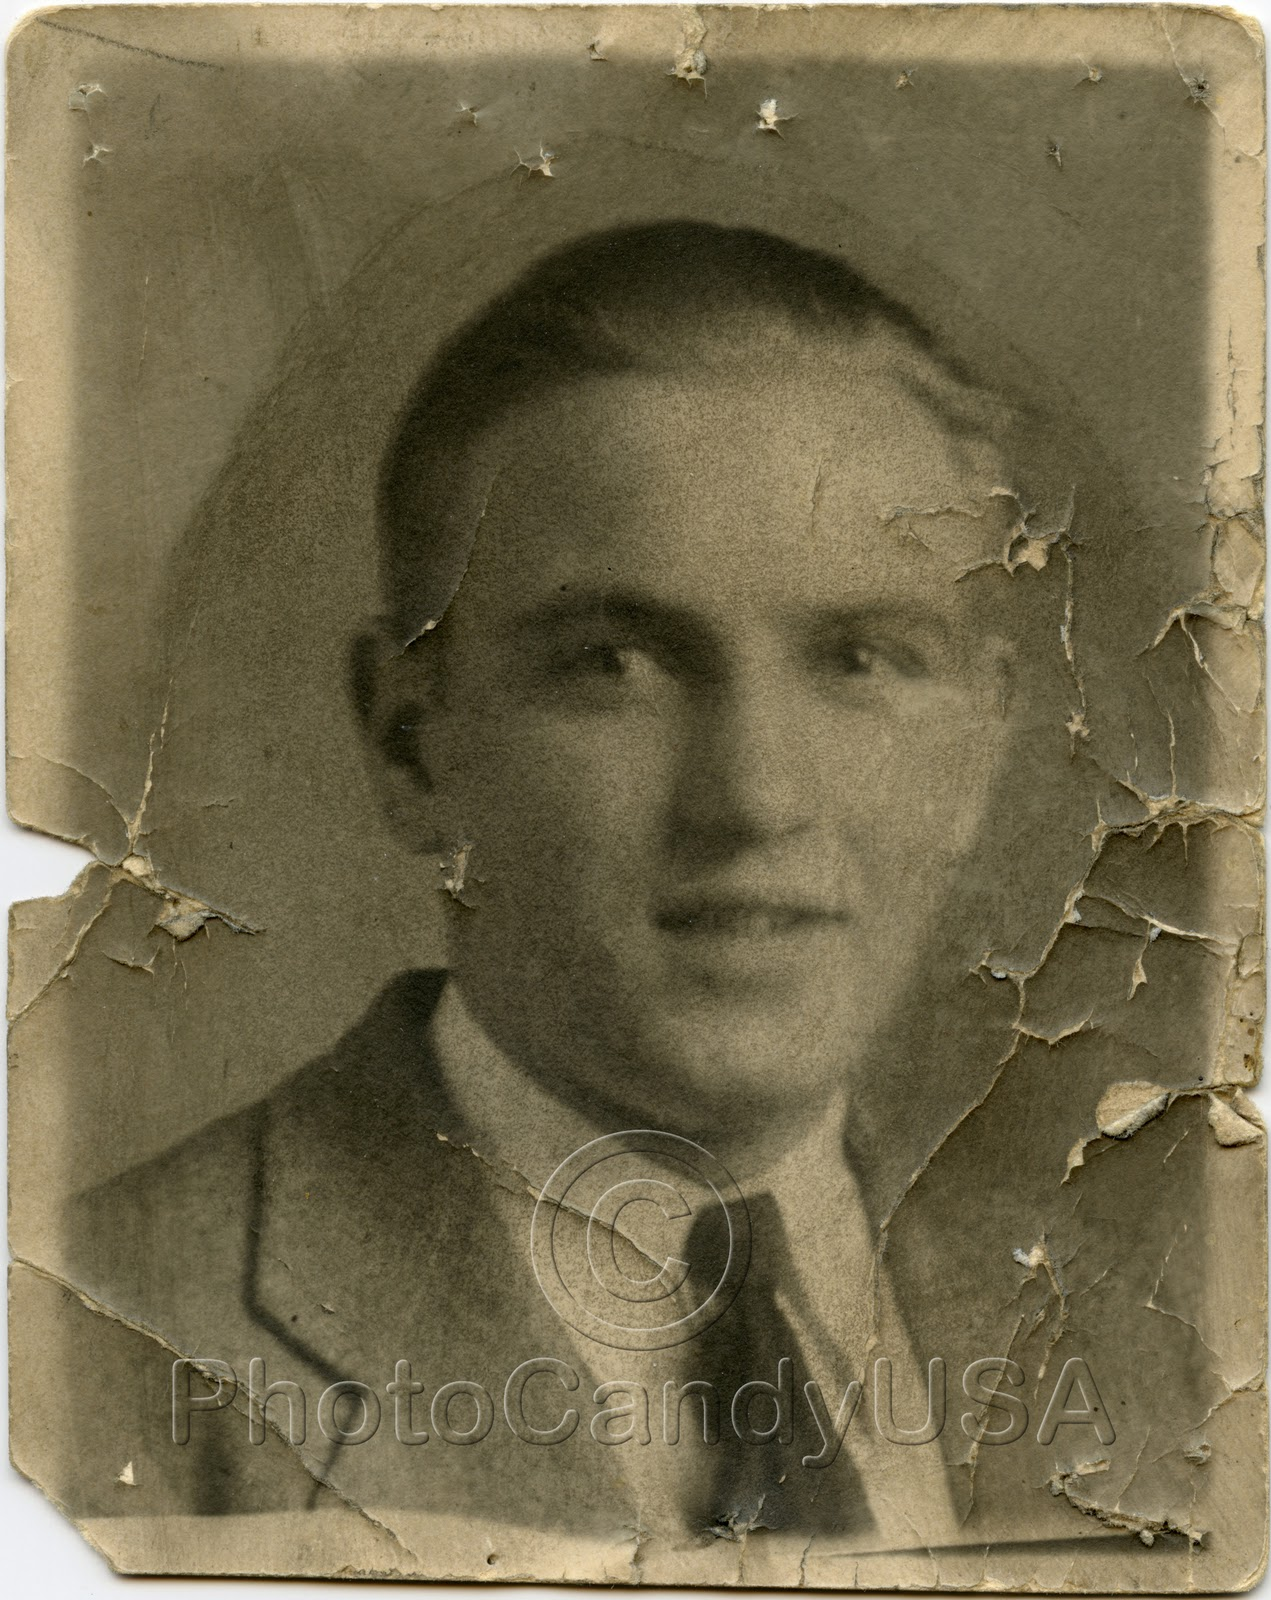 Old Damaged Black And White Photos With severe surface damageOld Damaged Black And White Photos